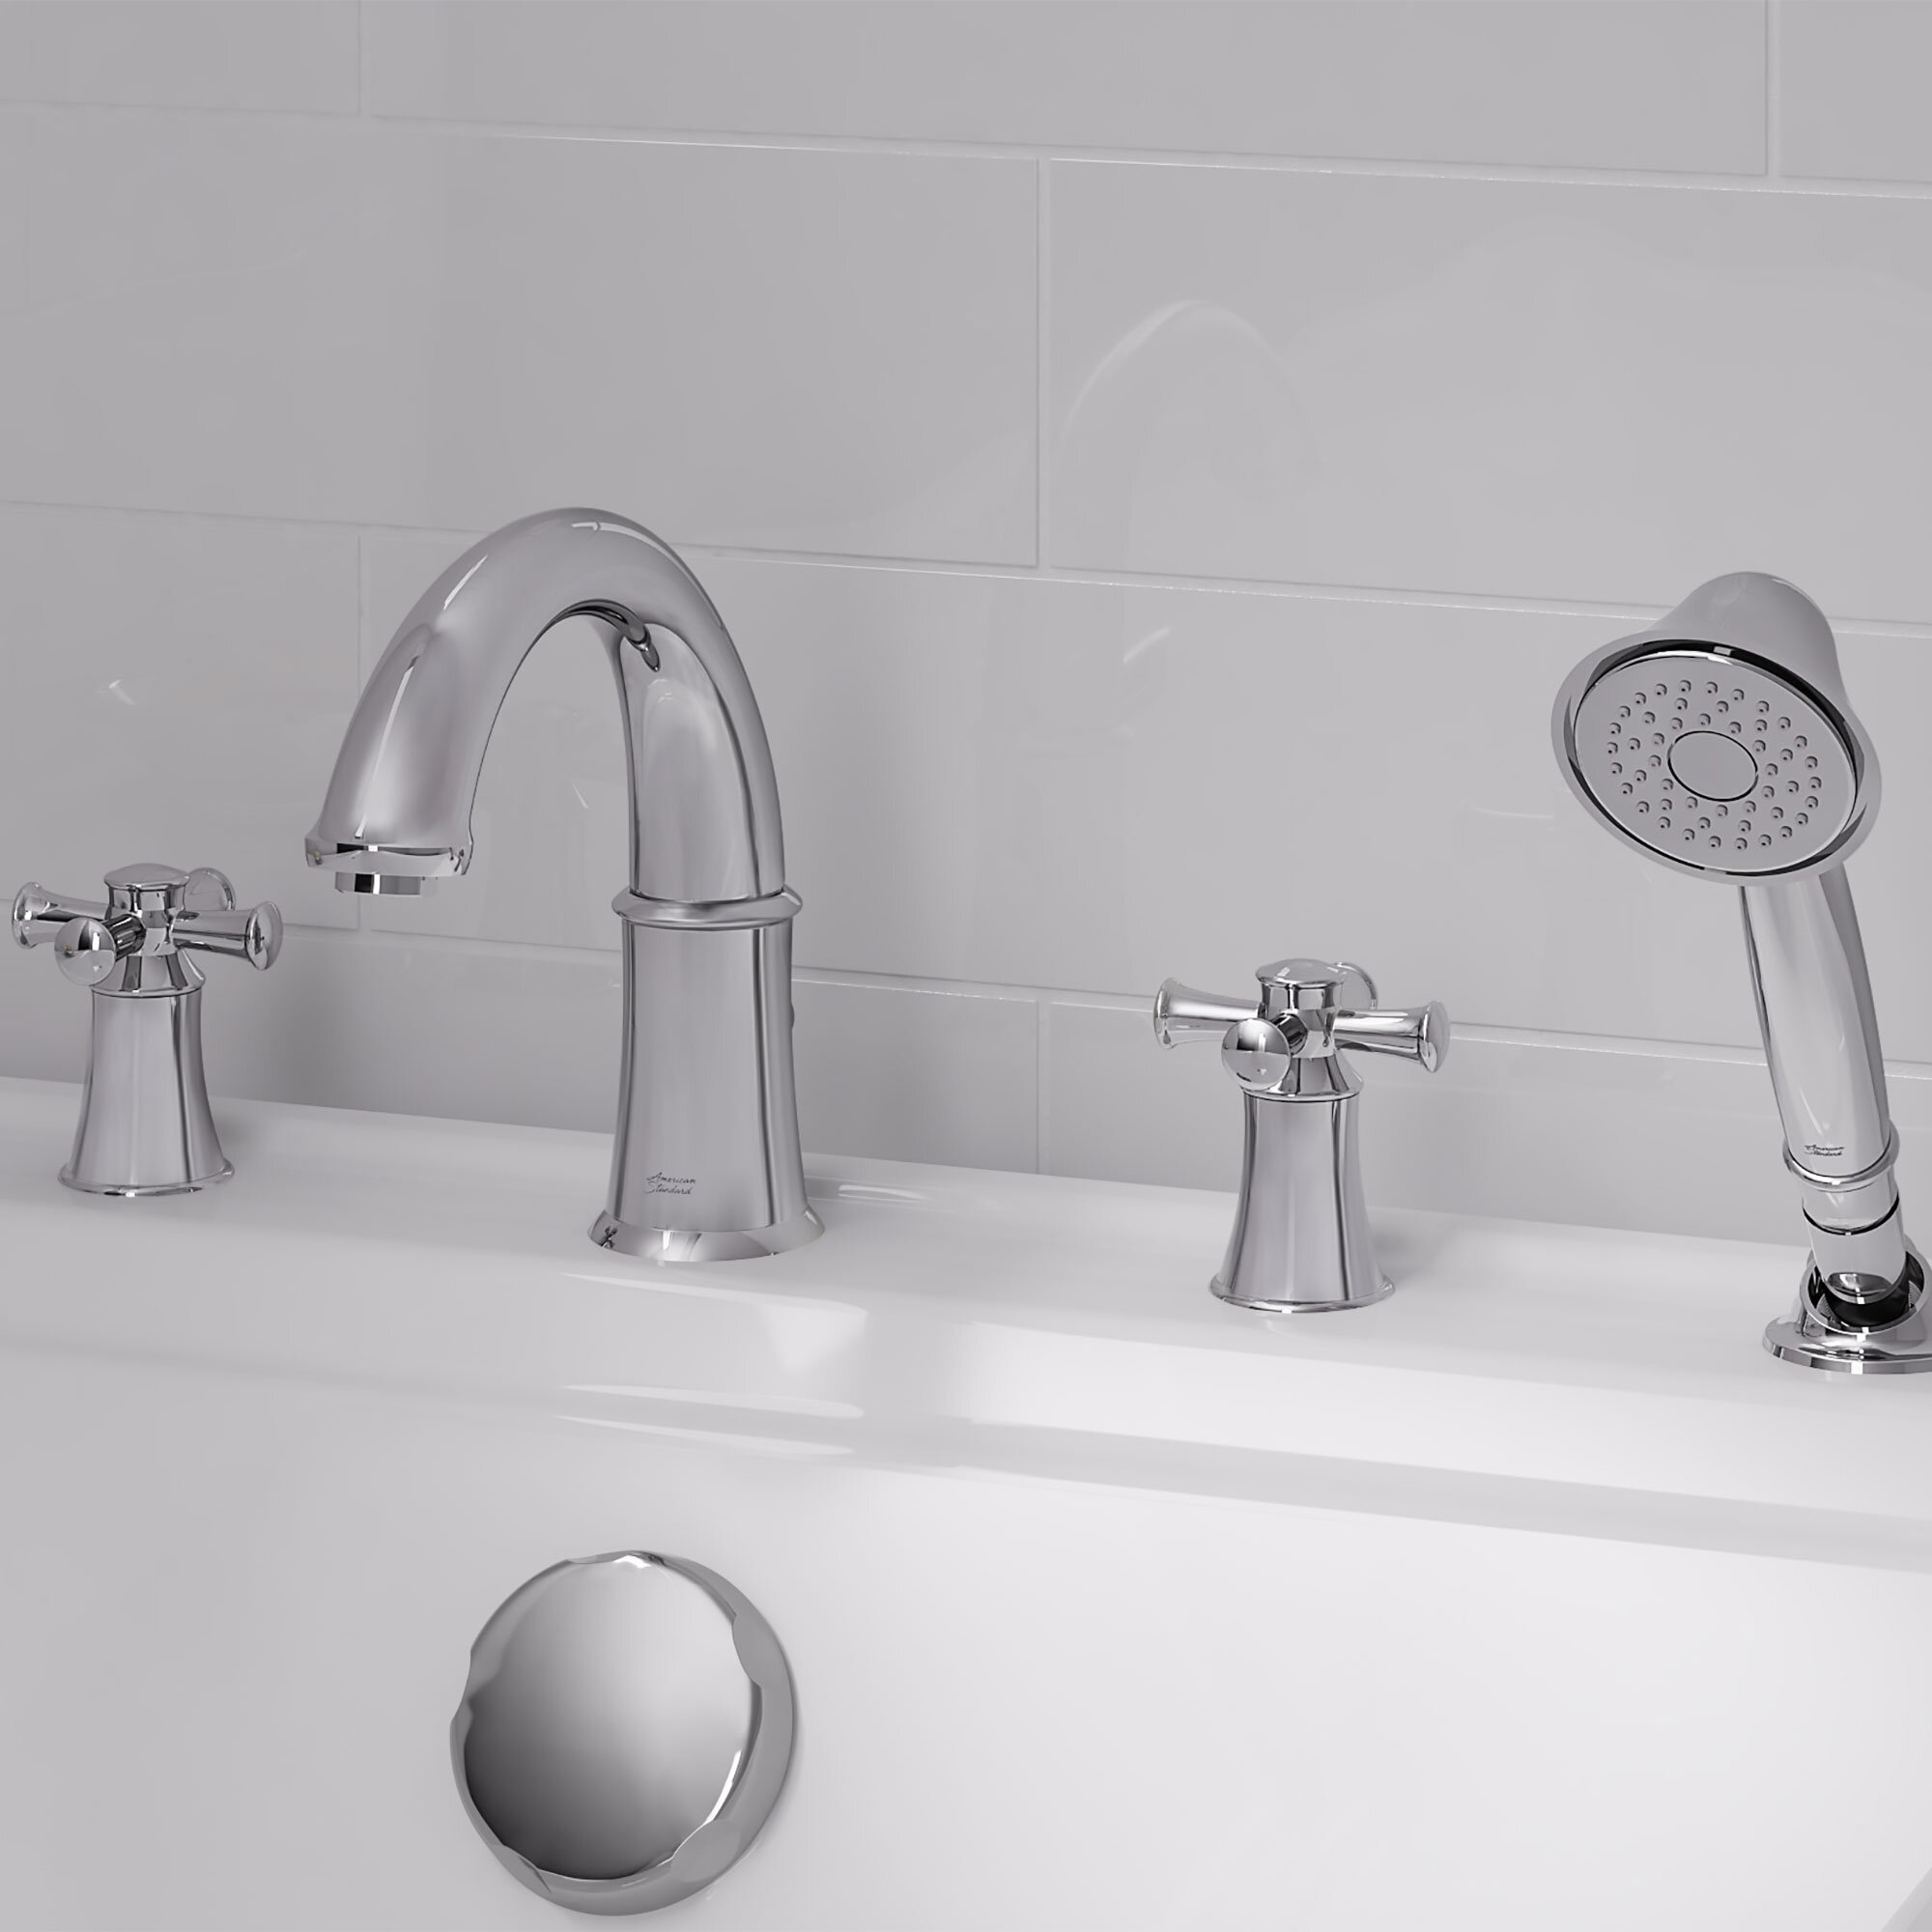 Portsmouth Double Handle Deck Mounted Roman Tub Faucet Trim With Handshower